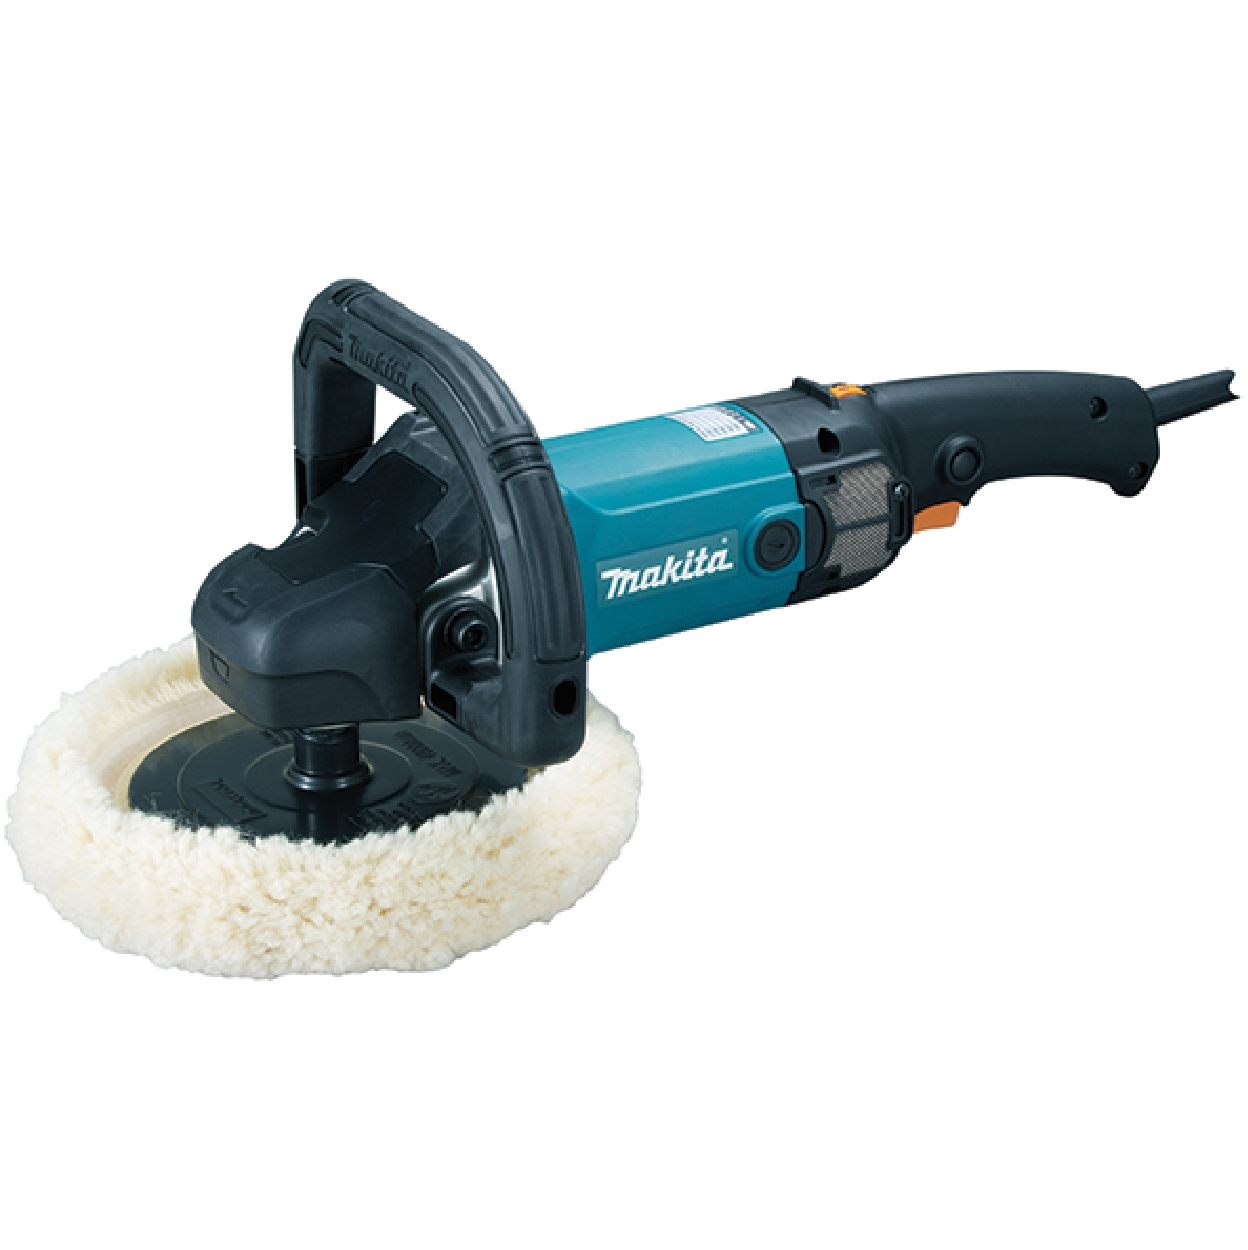 Makita Sander/Polisher 7""